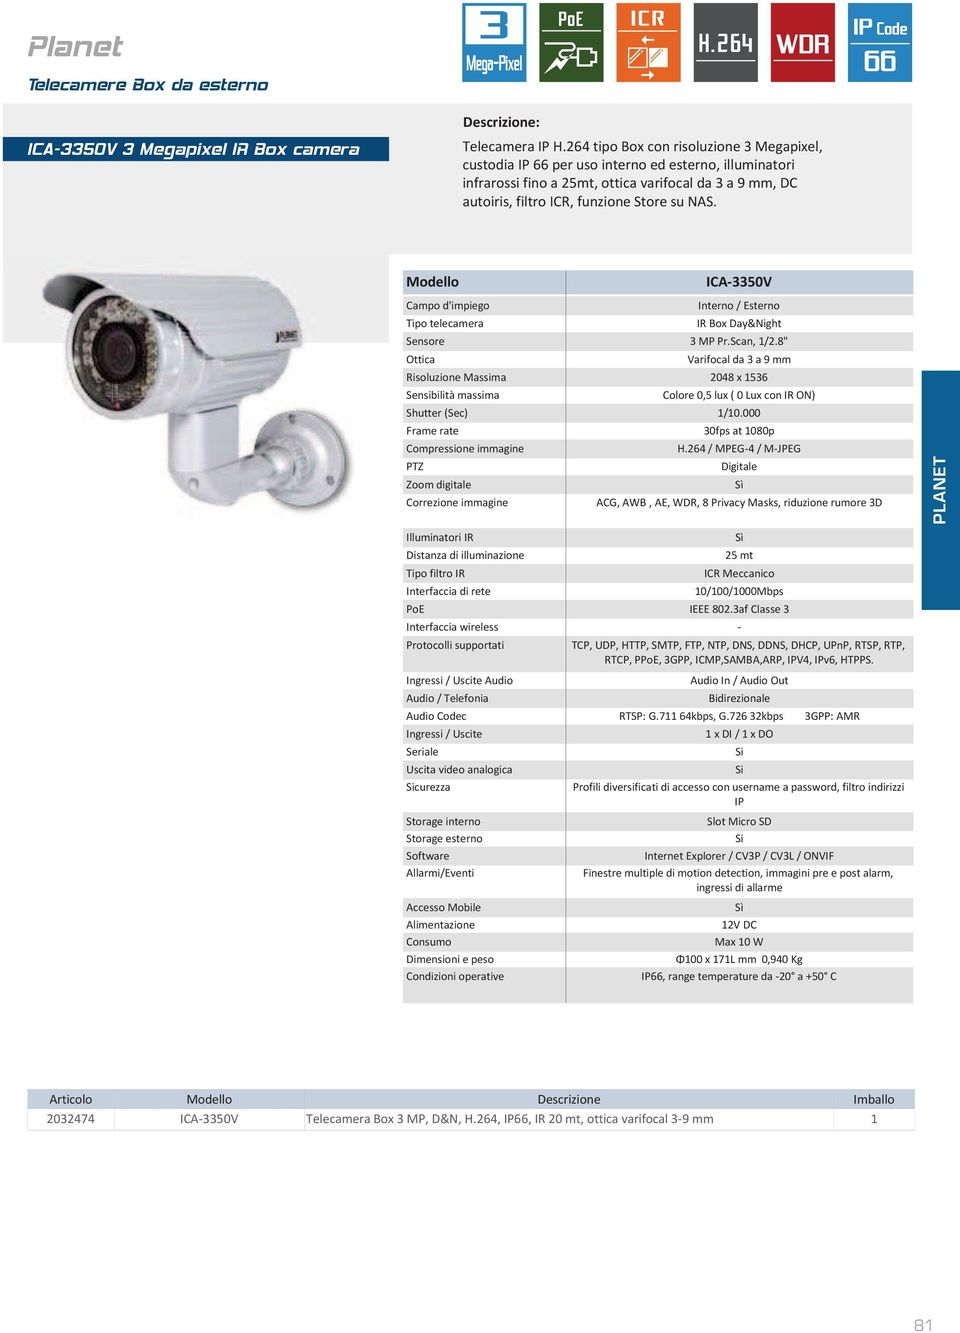 "ICA-3350V Interno / Esterno IR Box Day&Night Sensore 3 MP Pr.Scan, 1/2.8"" Varifocal da 3 a 9 mm Risoluzione Massima 2048 x 1536 Colore 0,5 lux ( 0 Lux con IR ON) 30fps at 1080p H."